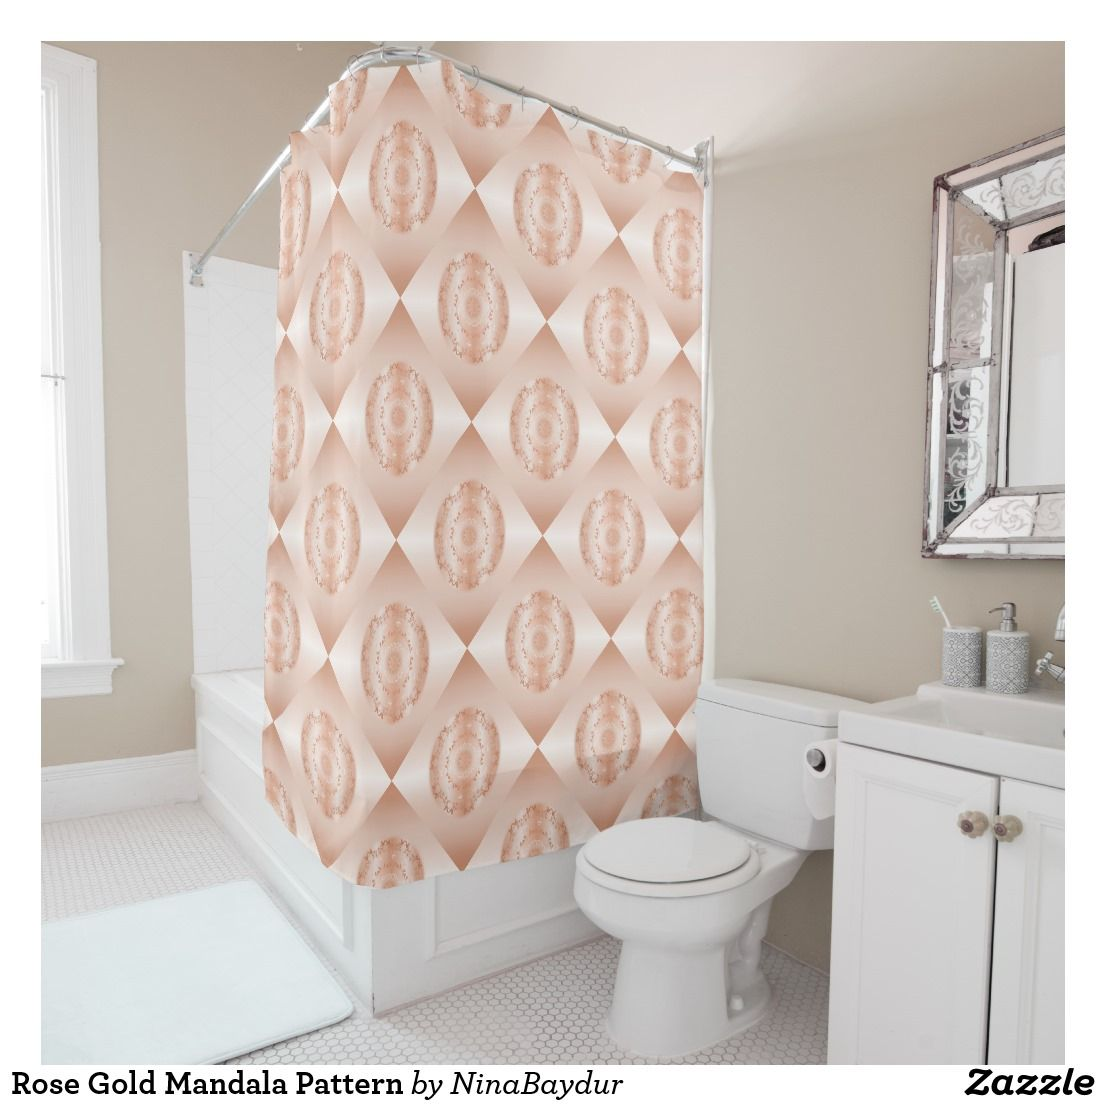 rose gold mandala pattern geometric shower curtain rose gold  - rose gold mandala pattern geometric shower curtain rose gold decocopper